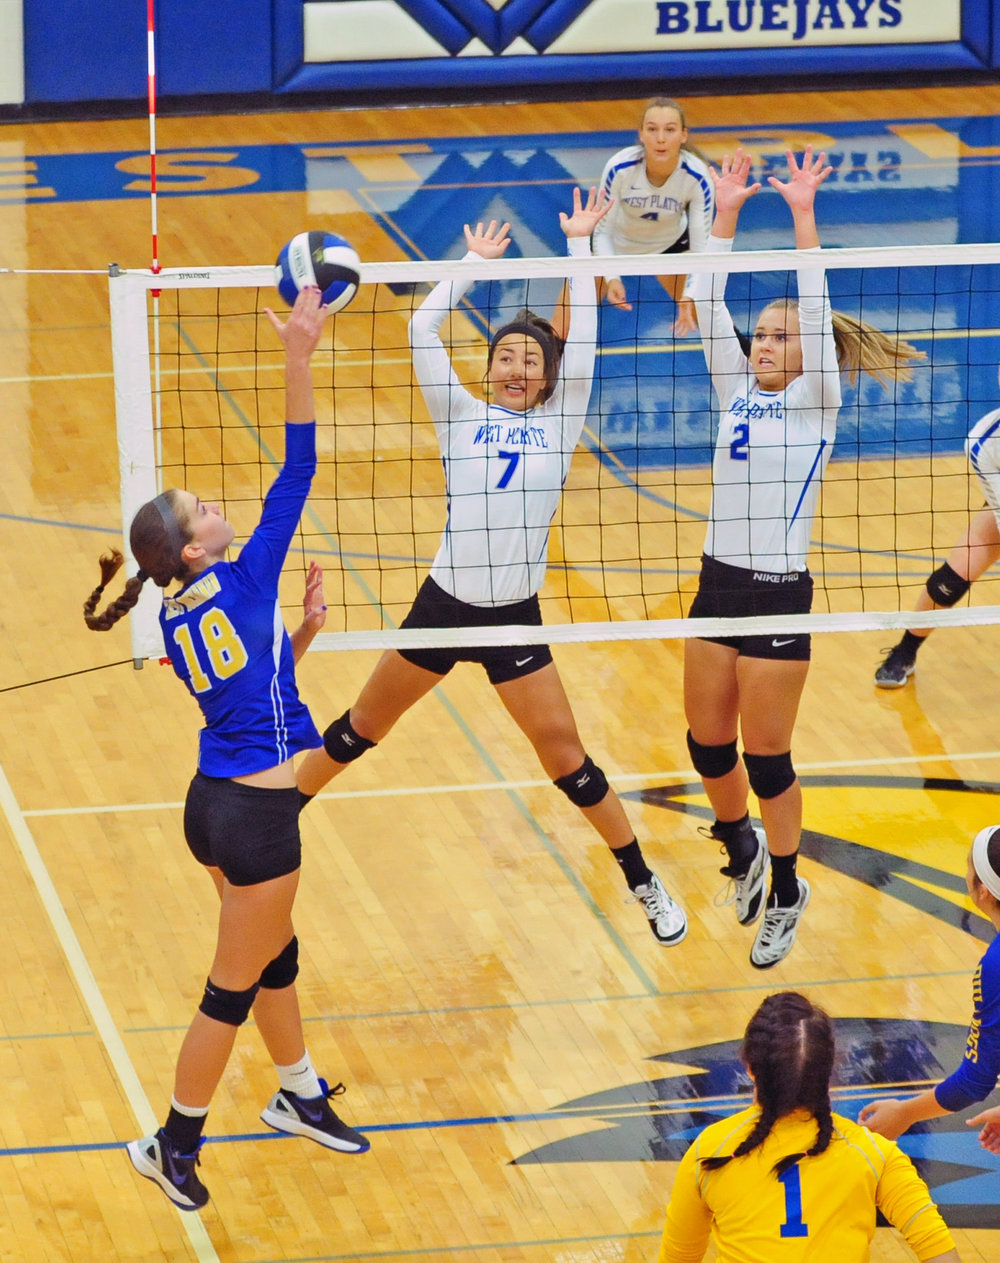 NICK INGRAM/Citizen photo West Platte sophomores Tori Norman (7) and Sam Rotterman (2) go up for a block against East Buchanan in a KCI Conference match Thursday, Sept. 7 at West Platte High School in Weston, Mo.